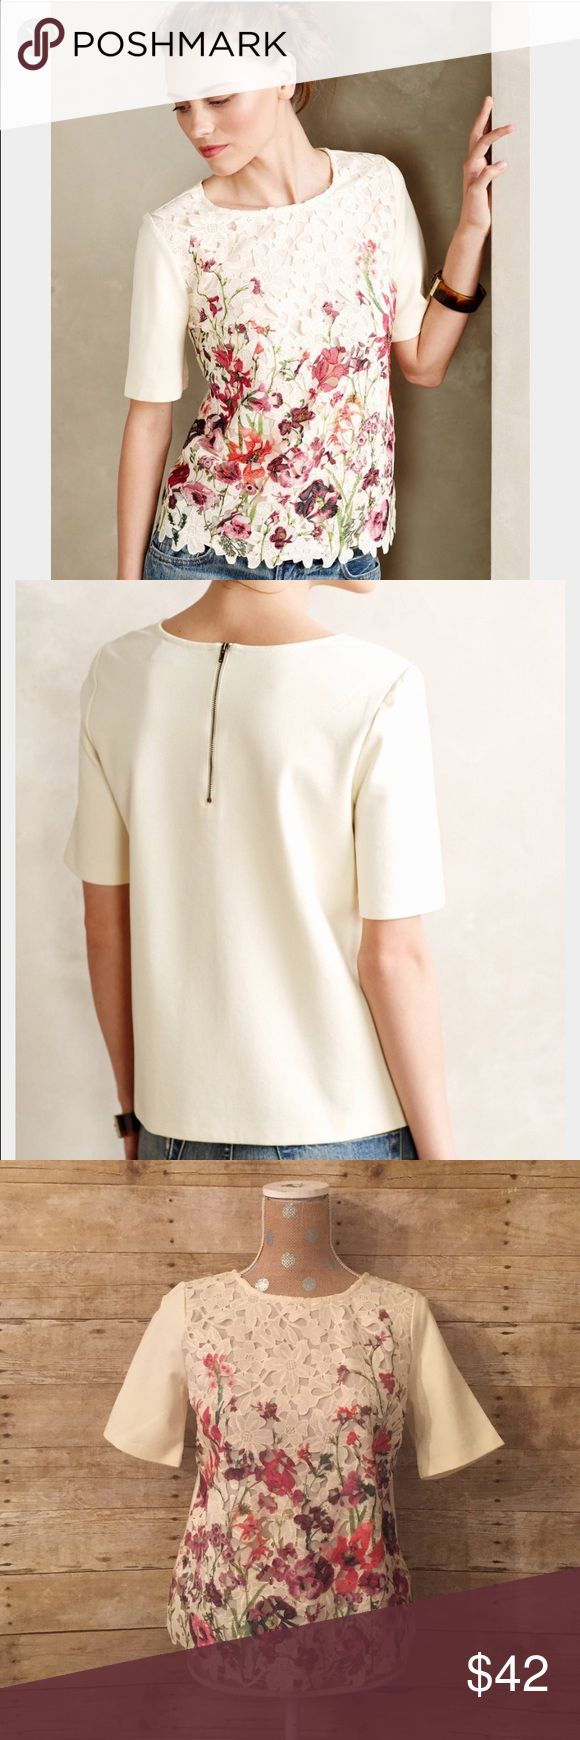 Anthropologie Sunday in Brooklyn Canna Lace Tee Anthropologie Canna Lace Tee by Sunday in Brooklyn Size Small, excellent like new condition Zipper back Pullover styling Polyester, rayon, spandex Original price: $88 Anthropologie Tops